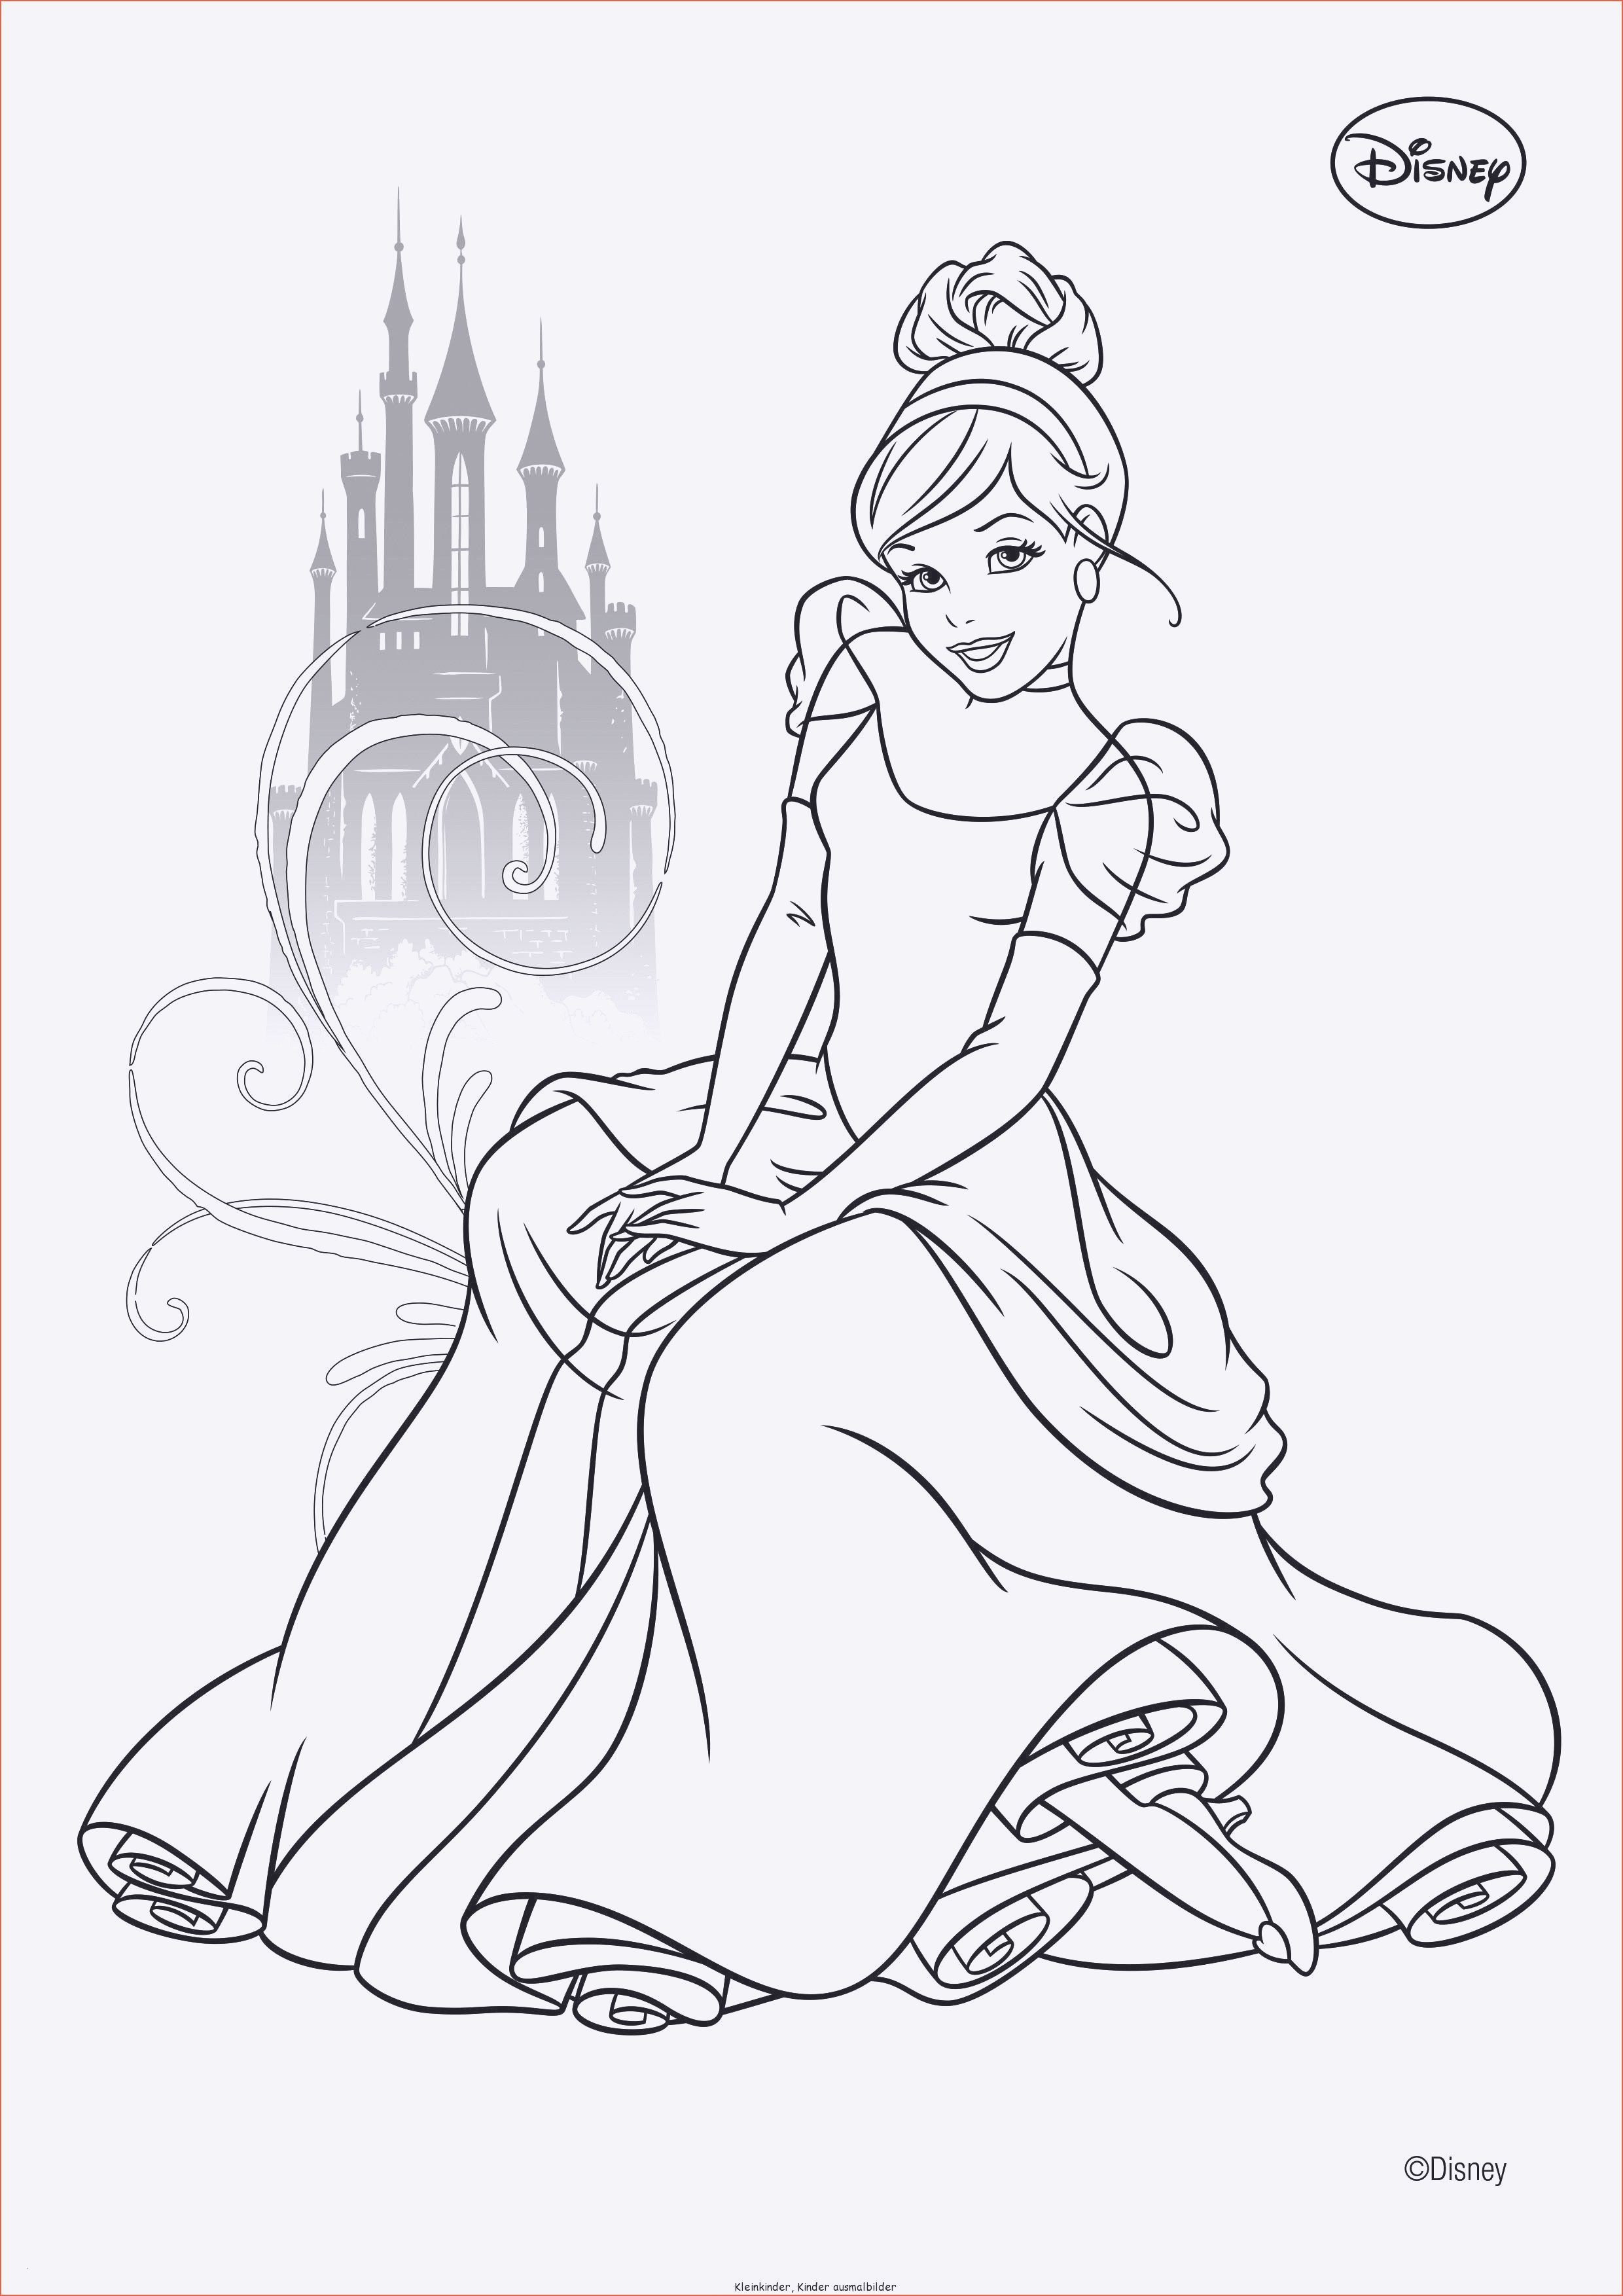 Ausmalbilder Weihnachten Elsa Und Anna Neu Elsa and Anna Coloring Pages Awesome Best Free Coloring Stock